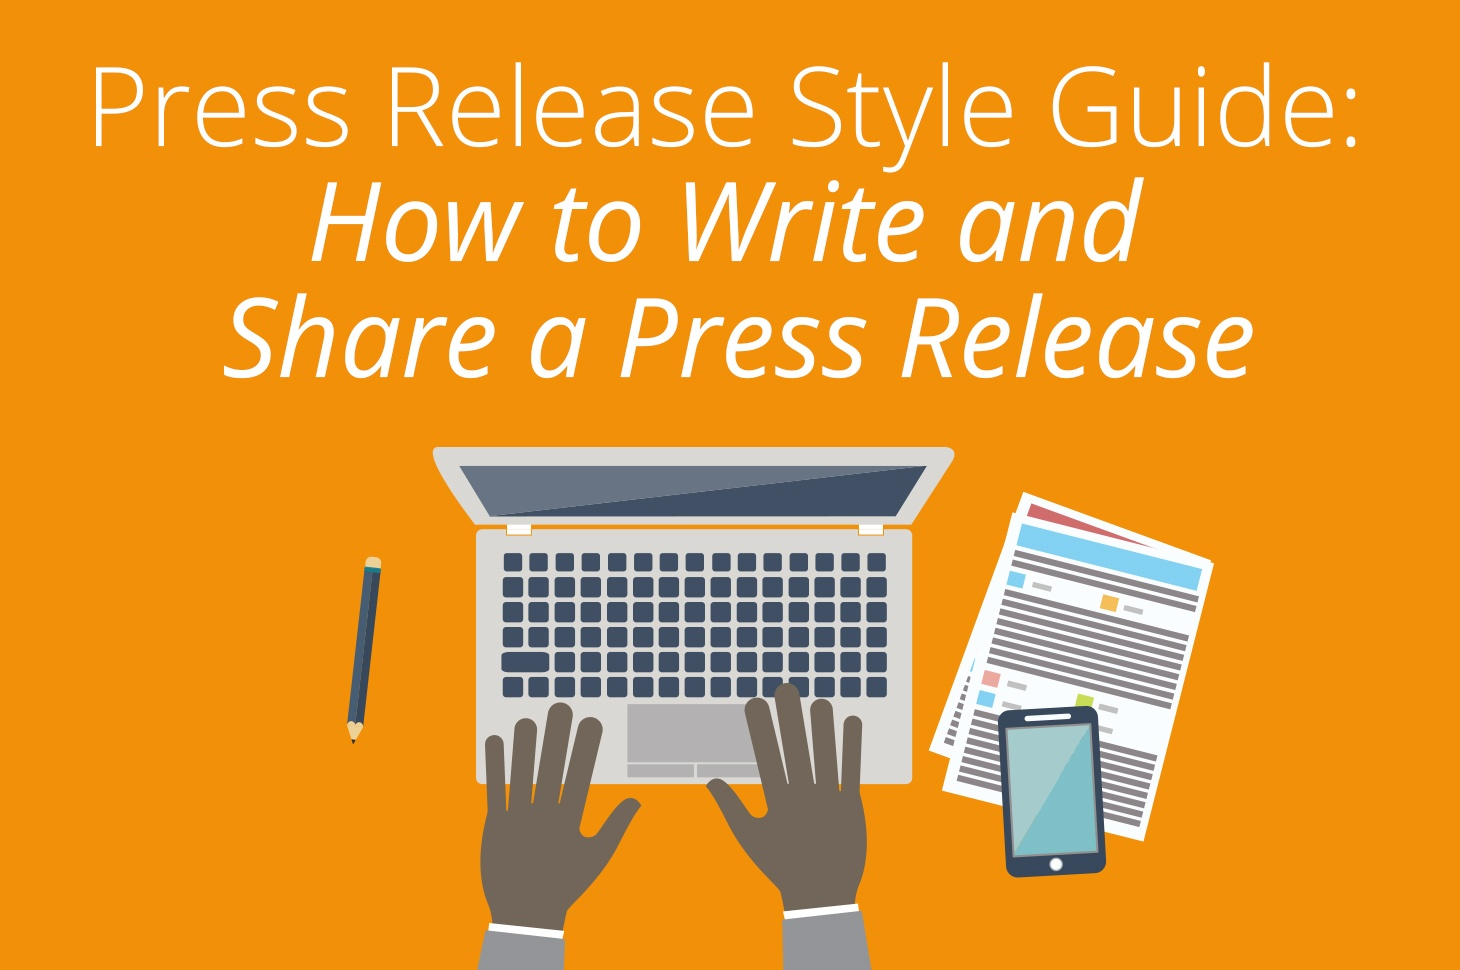 Press release style guide: How to write and share a press release